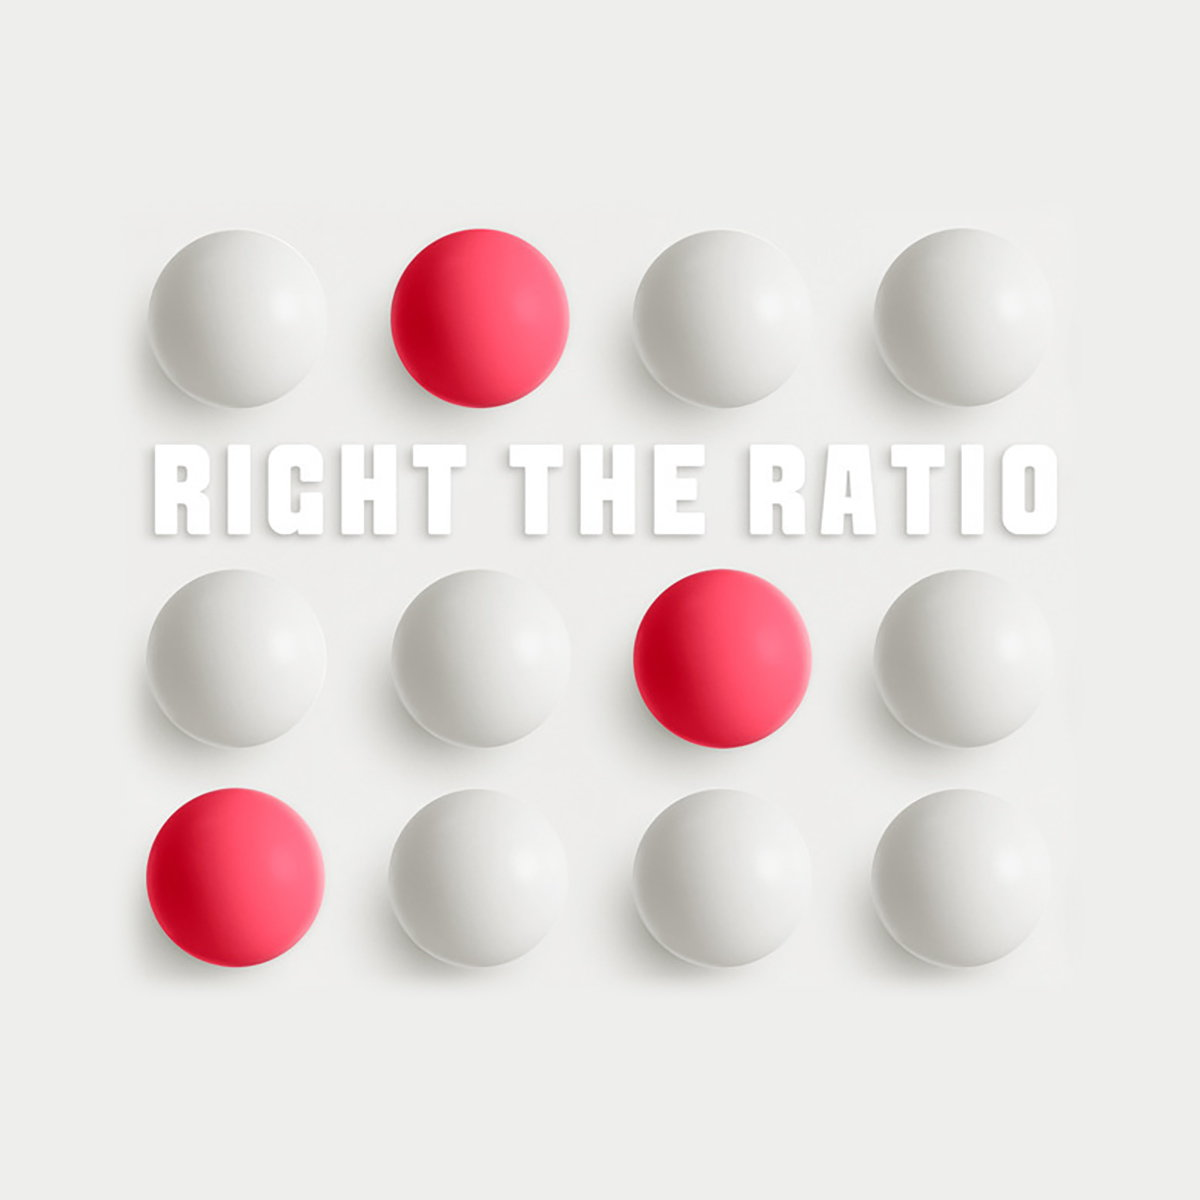 One Club For Creativity Announces 'Right The Ratio' Gender Equality Summit